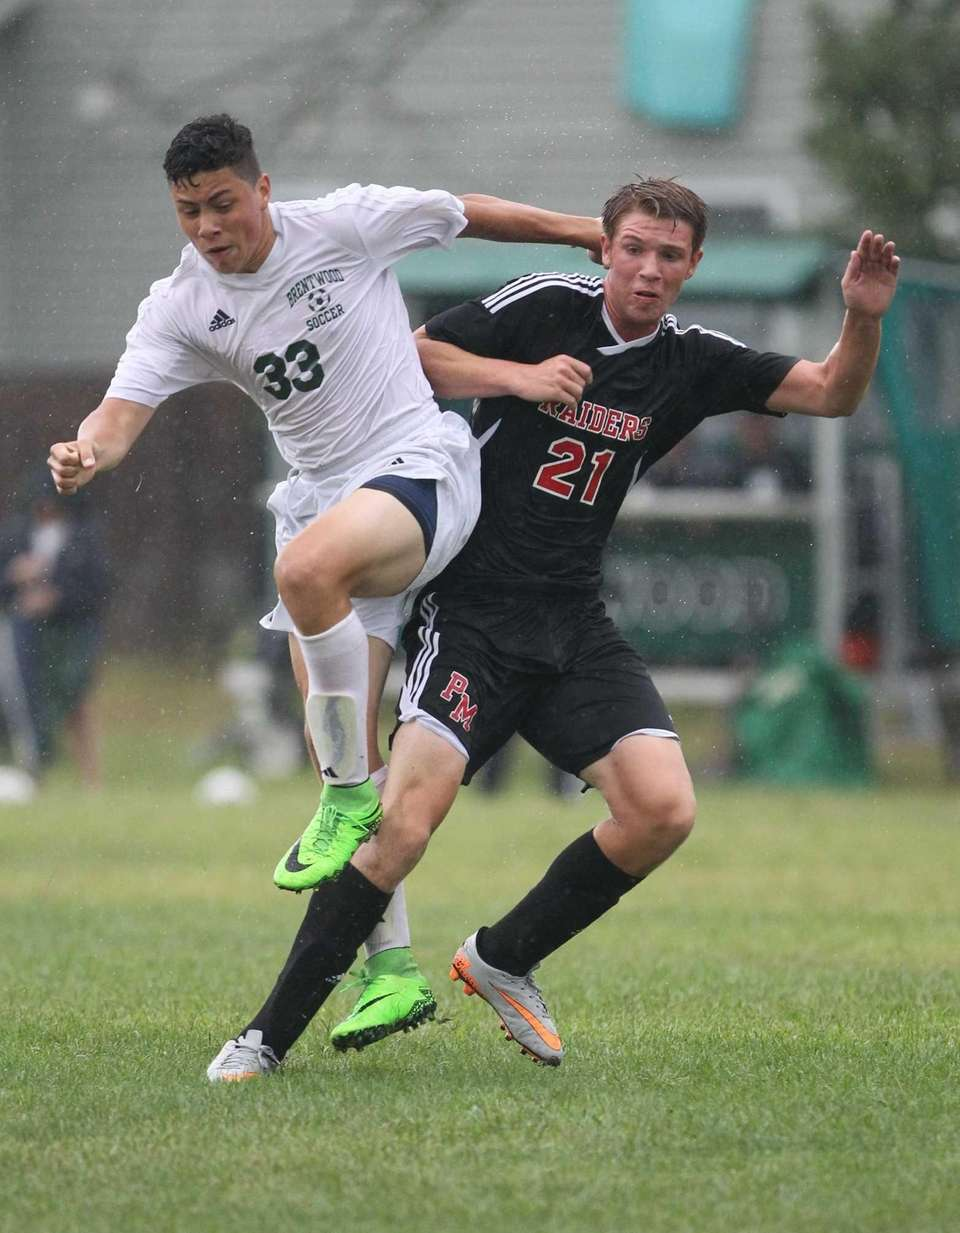 Brentwood's Rayneri Ruiz and Patchogue Medford's Jared Remian